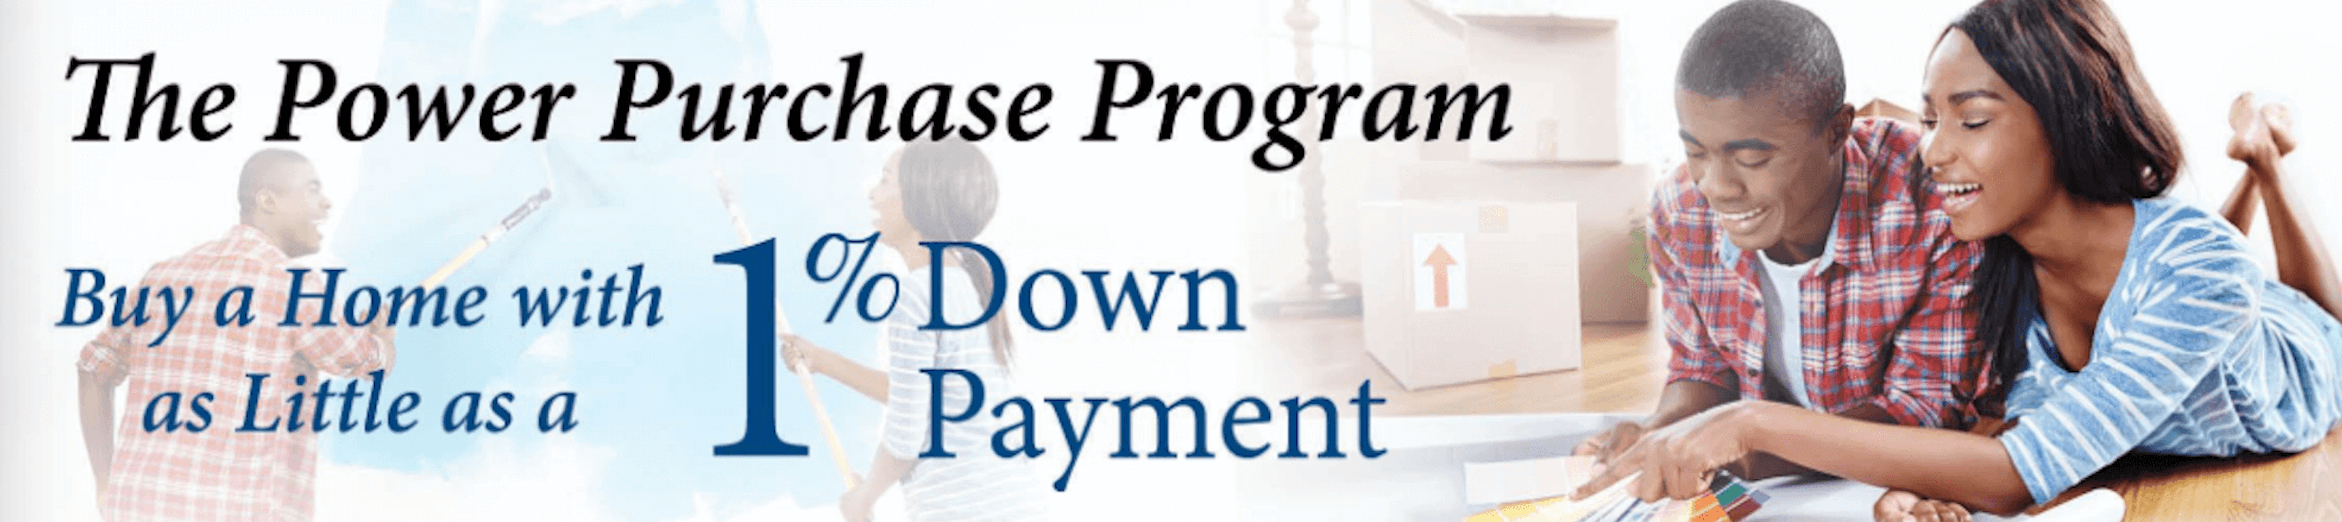 Power Purchase Program Land Home Financial